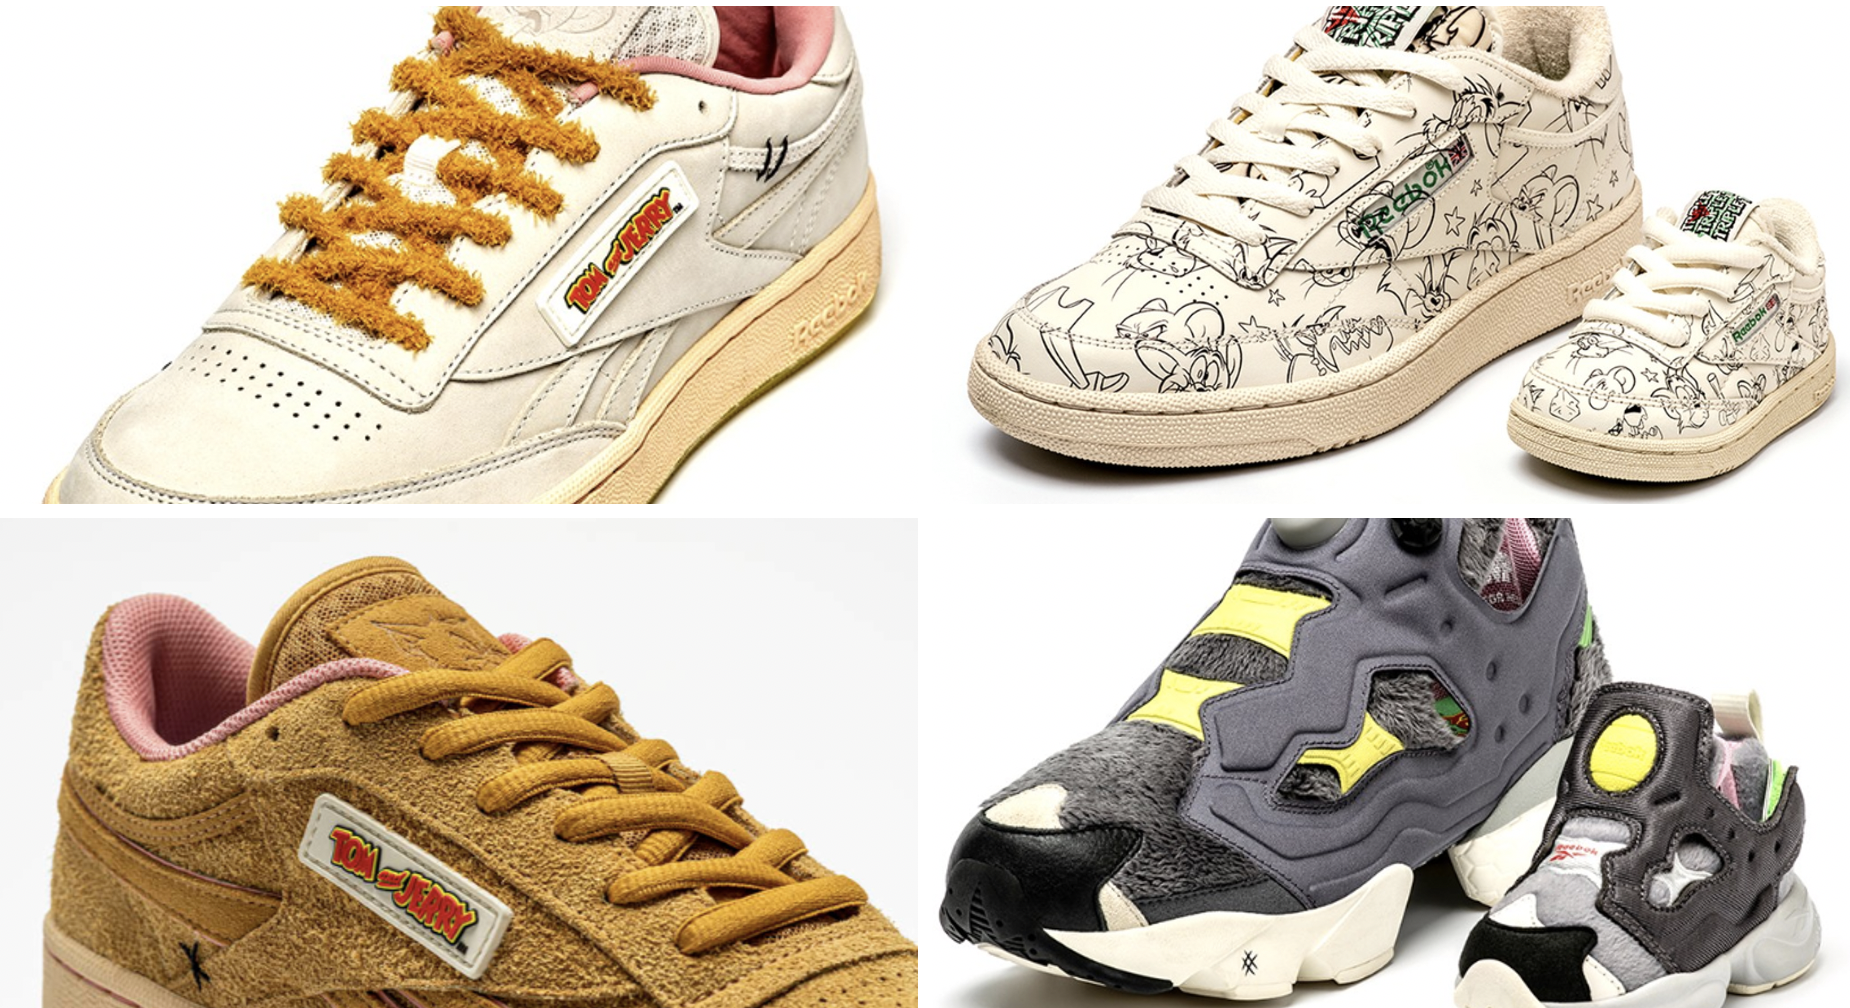 Reebok Releases 'Tom And Jerry' Collaboration Sneaker